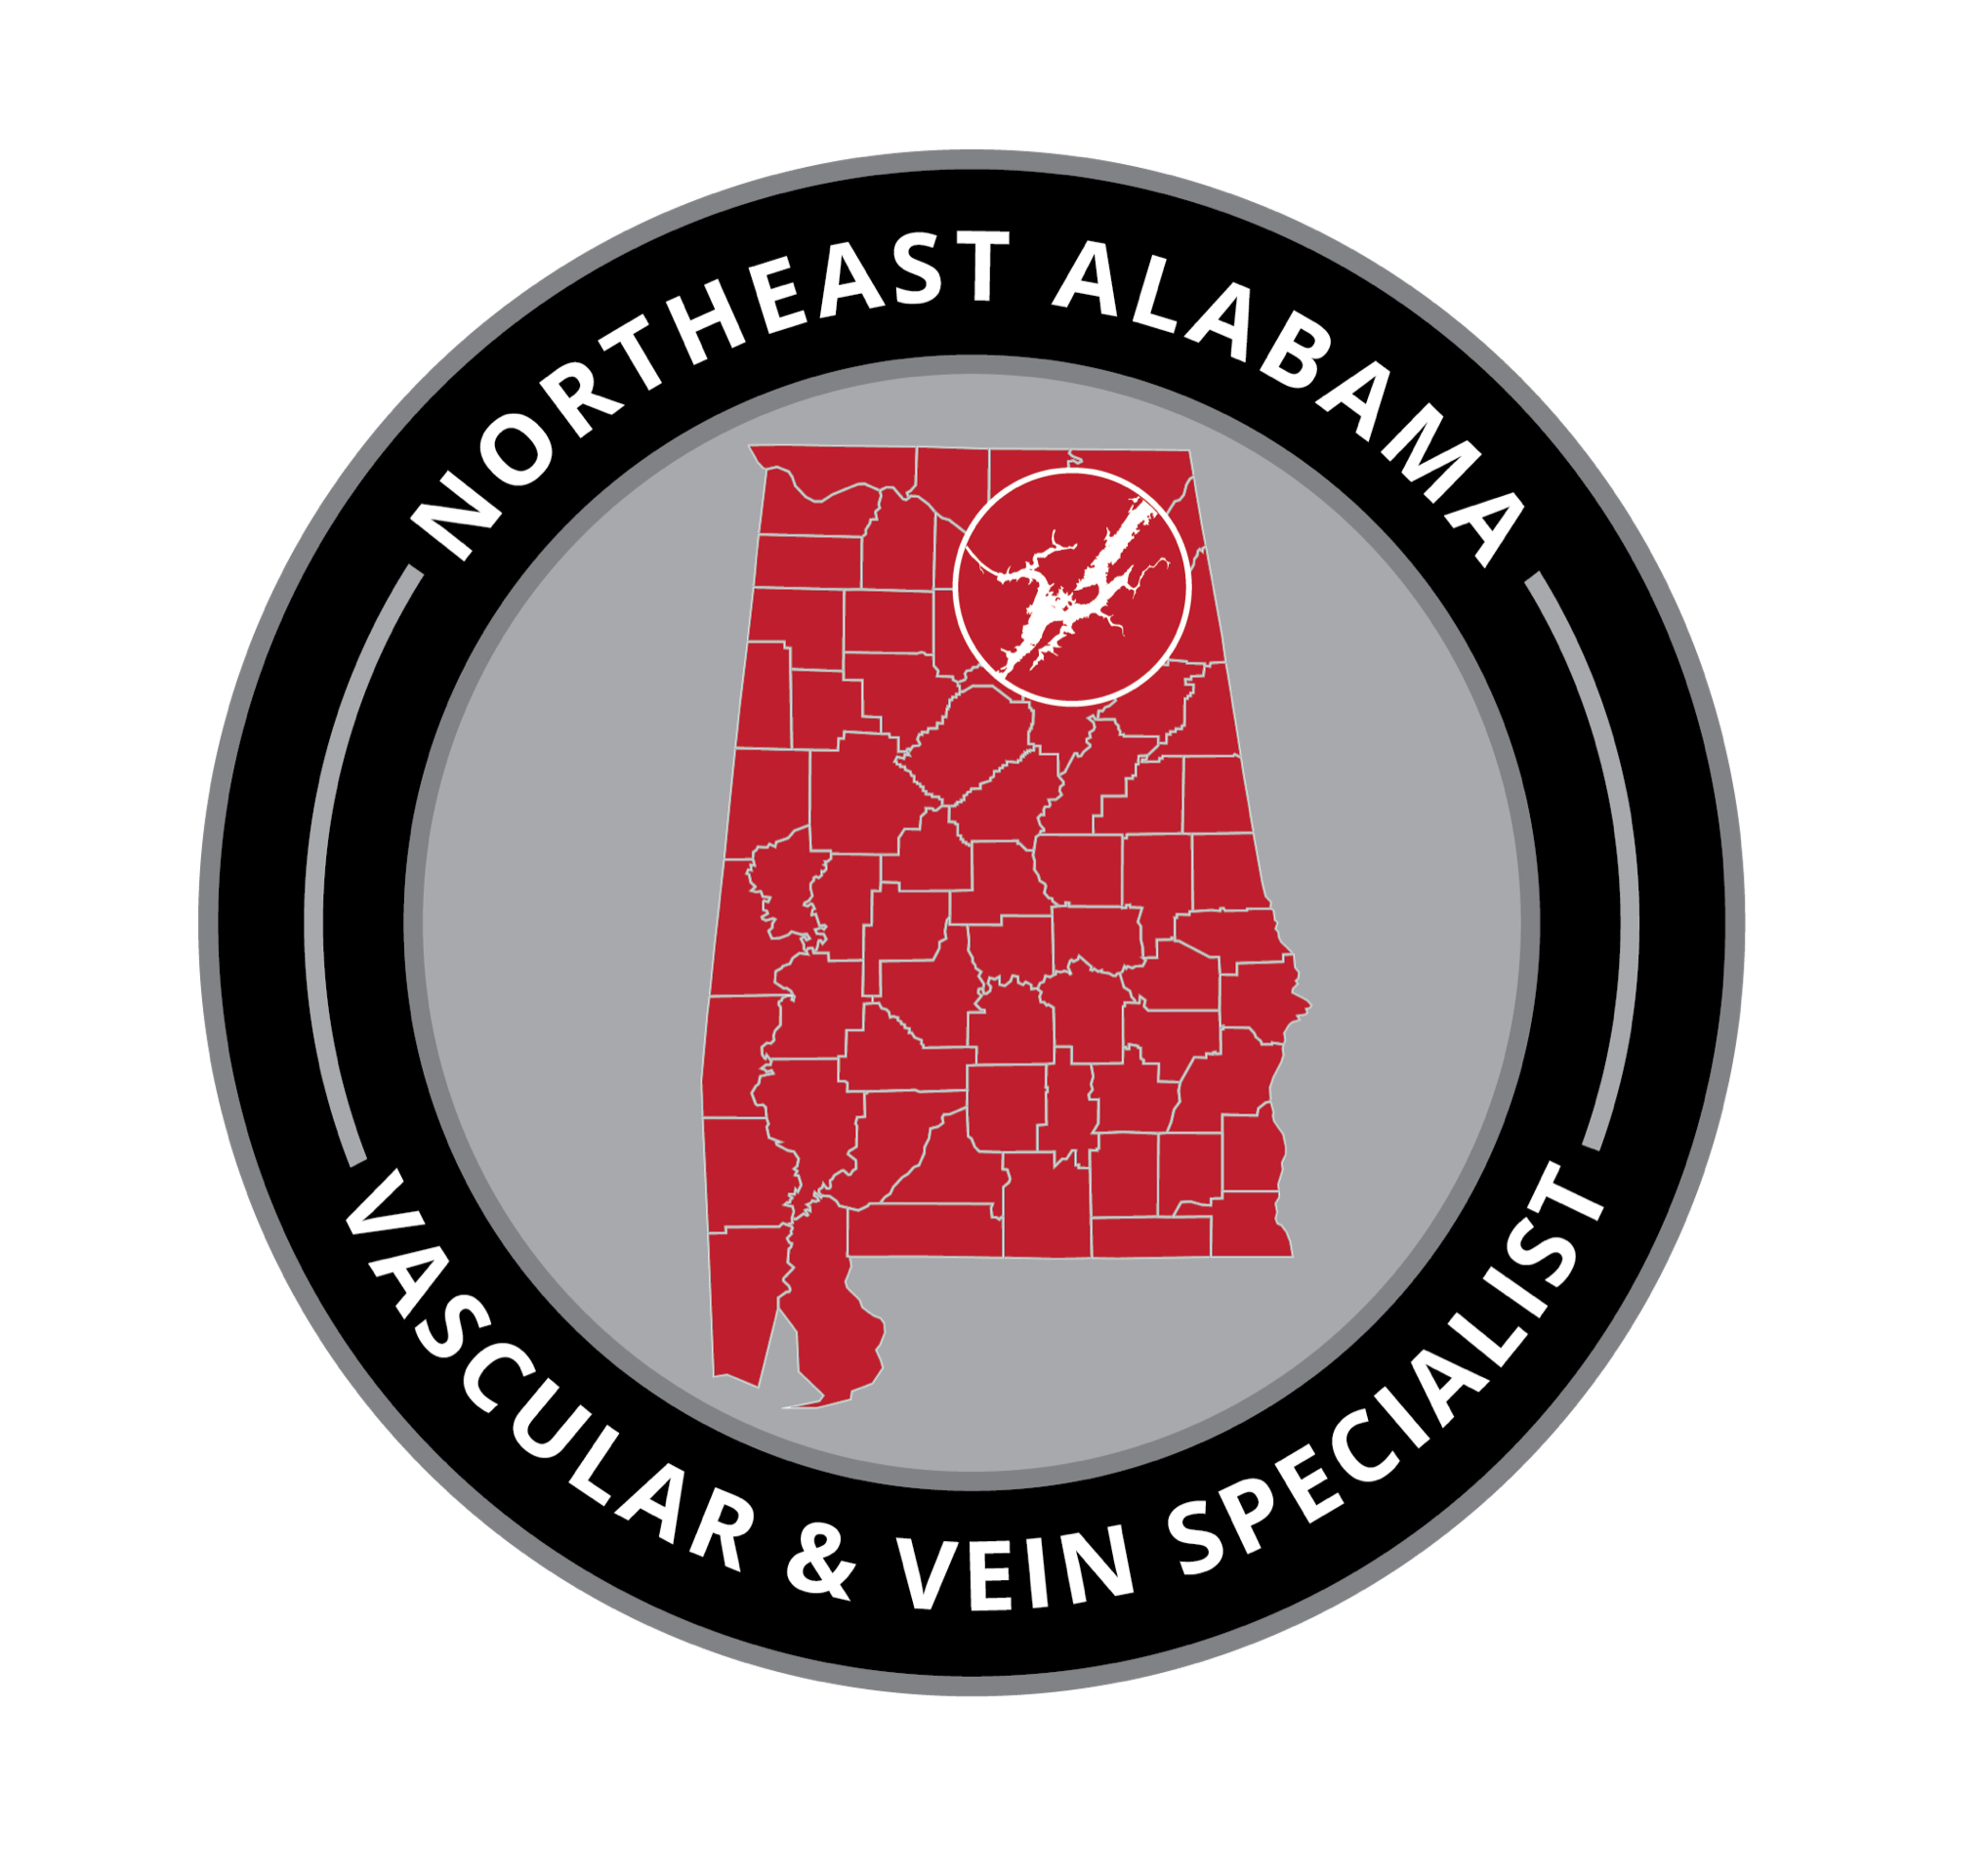 Northeast Alabama Vascular and Vein Specialist